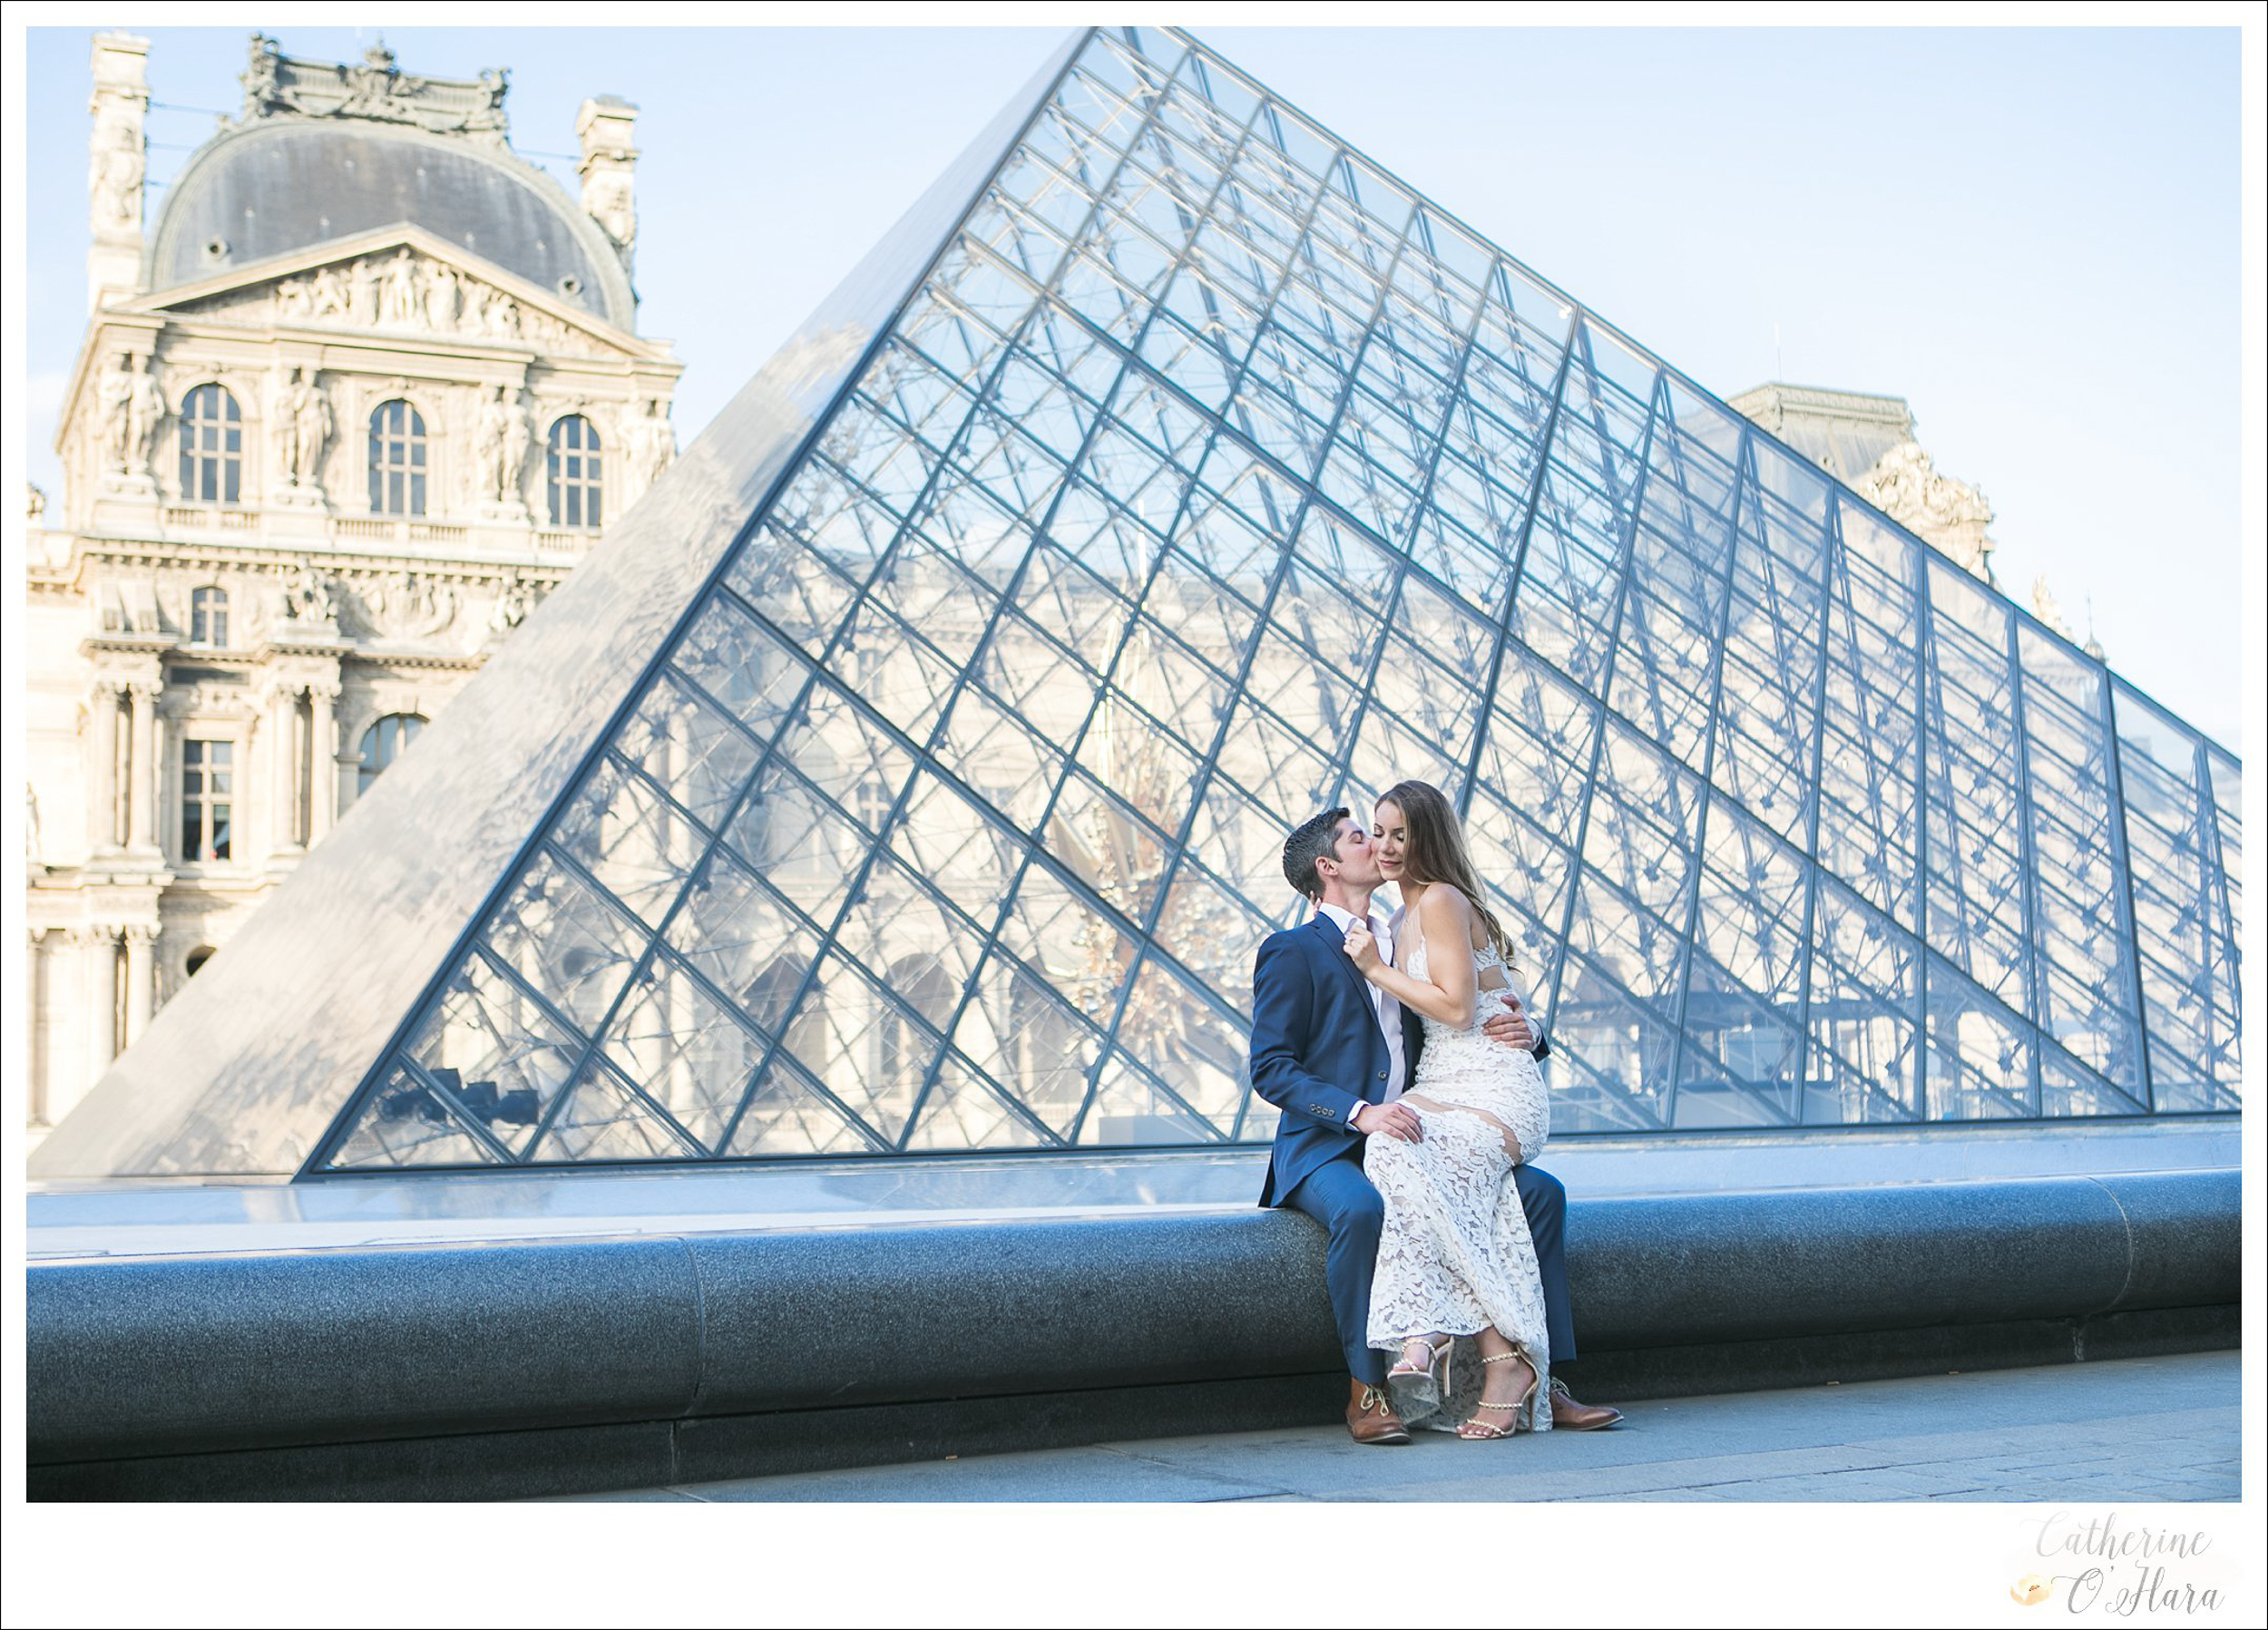 paris france engagement proposal photographer-44.jpg